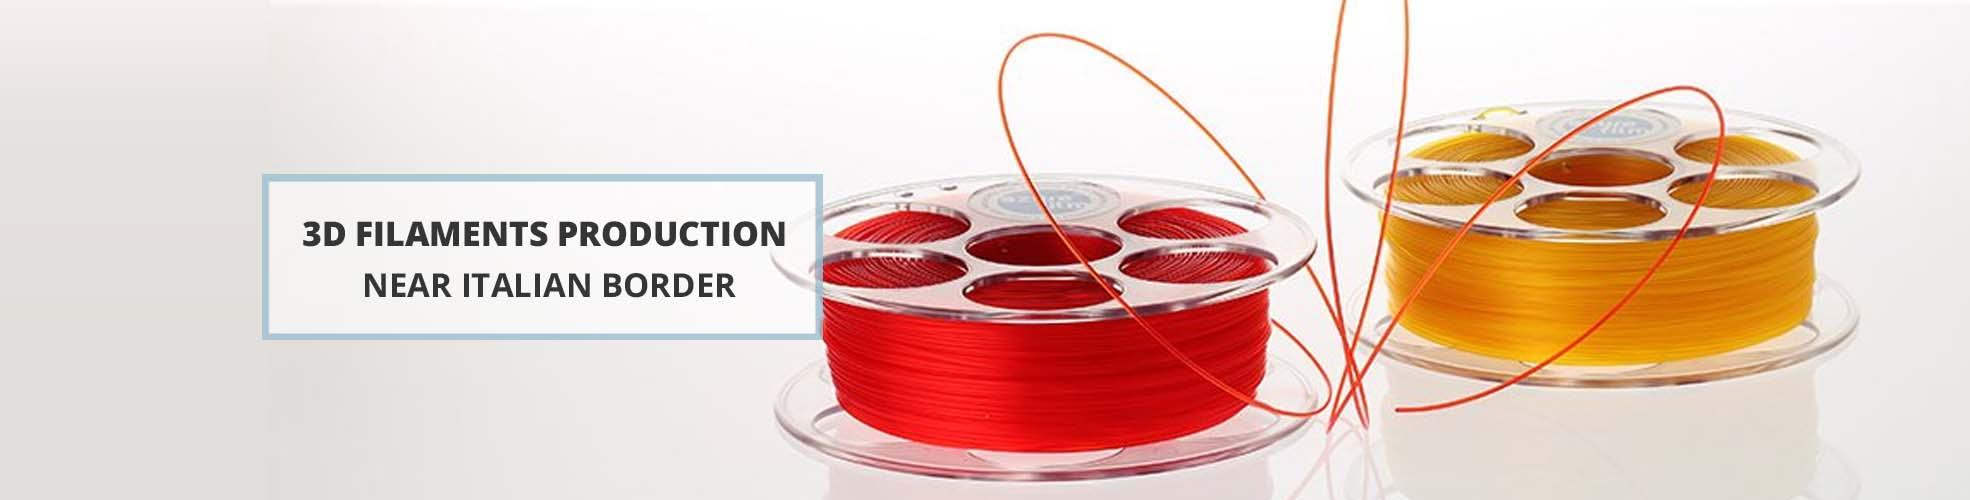 3D filaments and printers